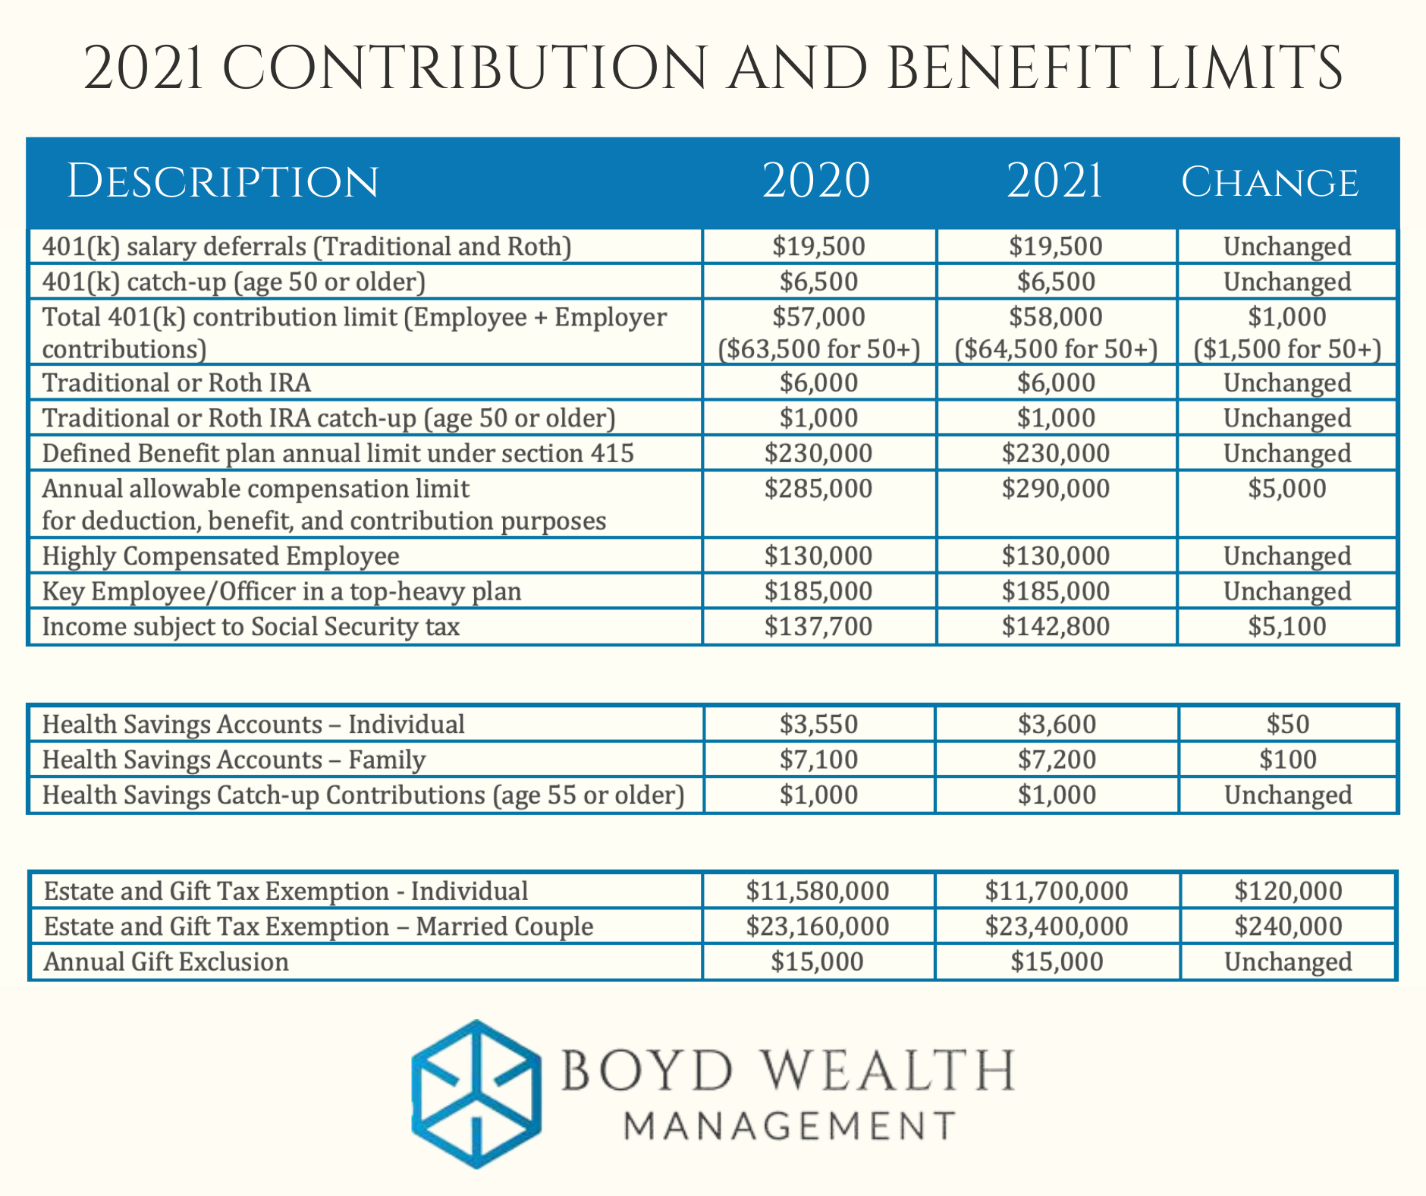 2021 Contribution and Benefit Limits